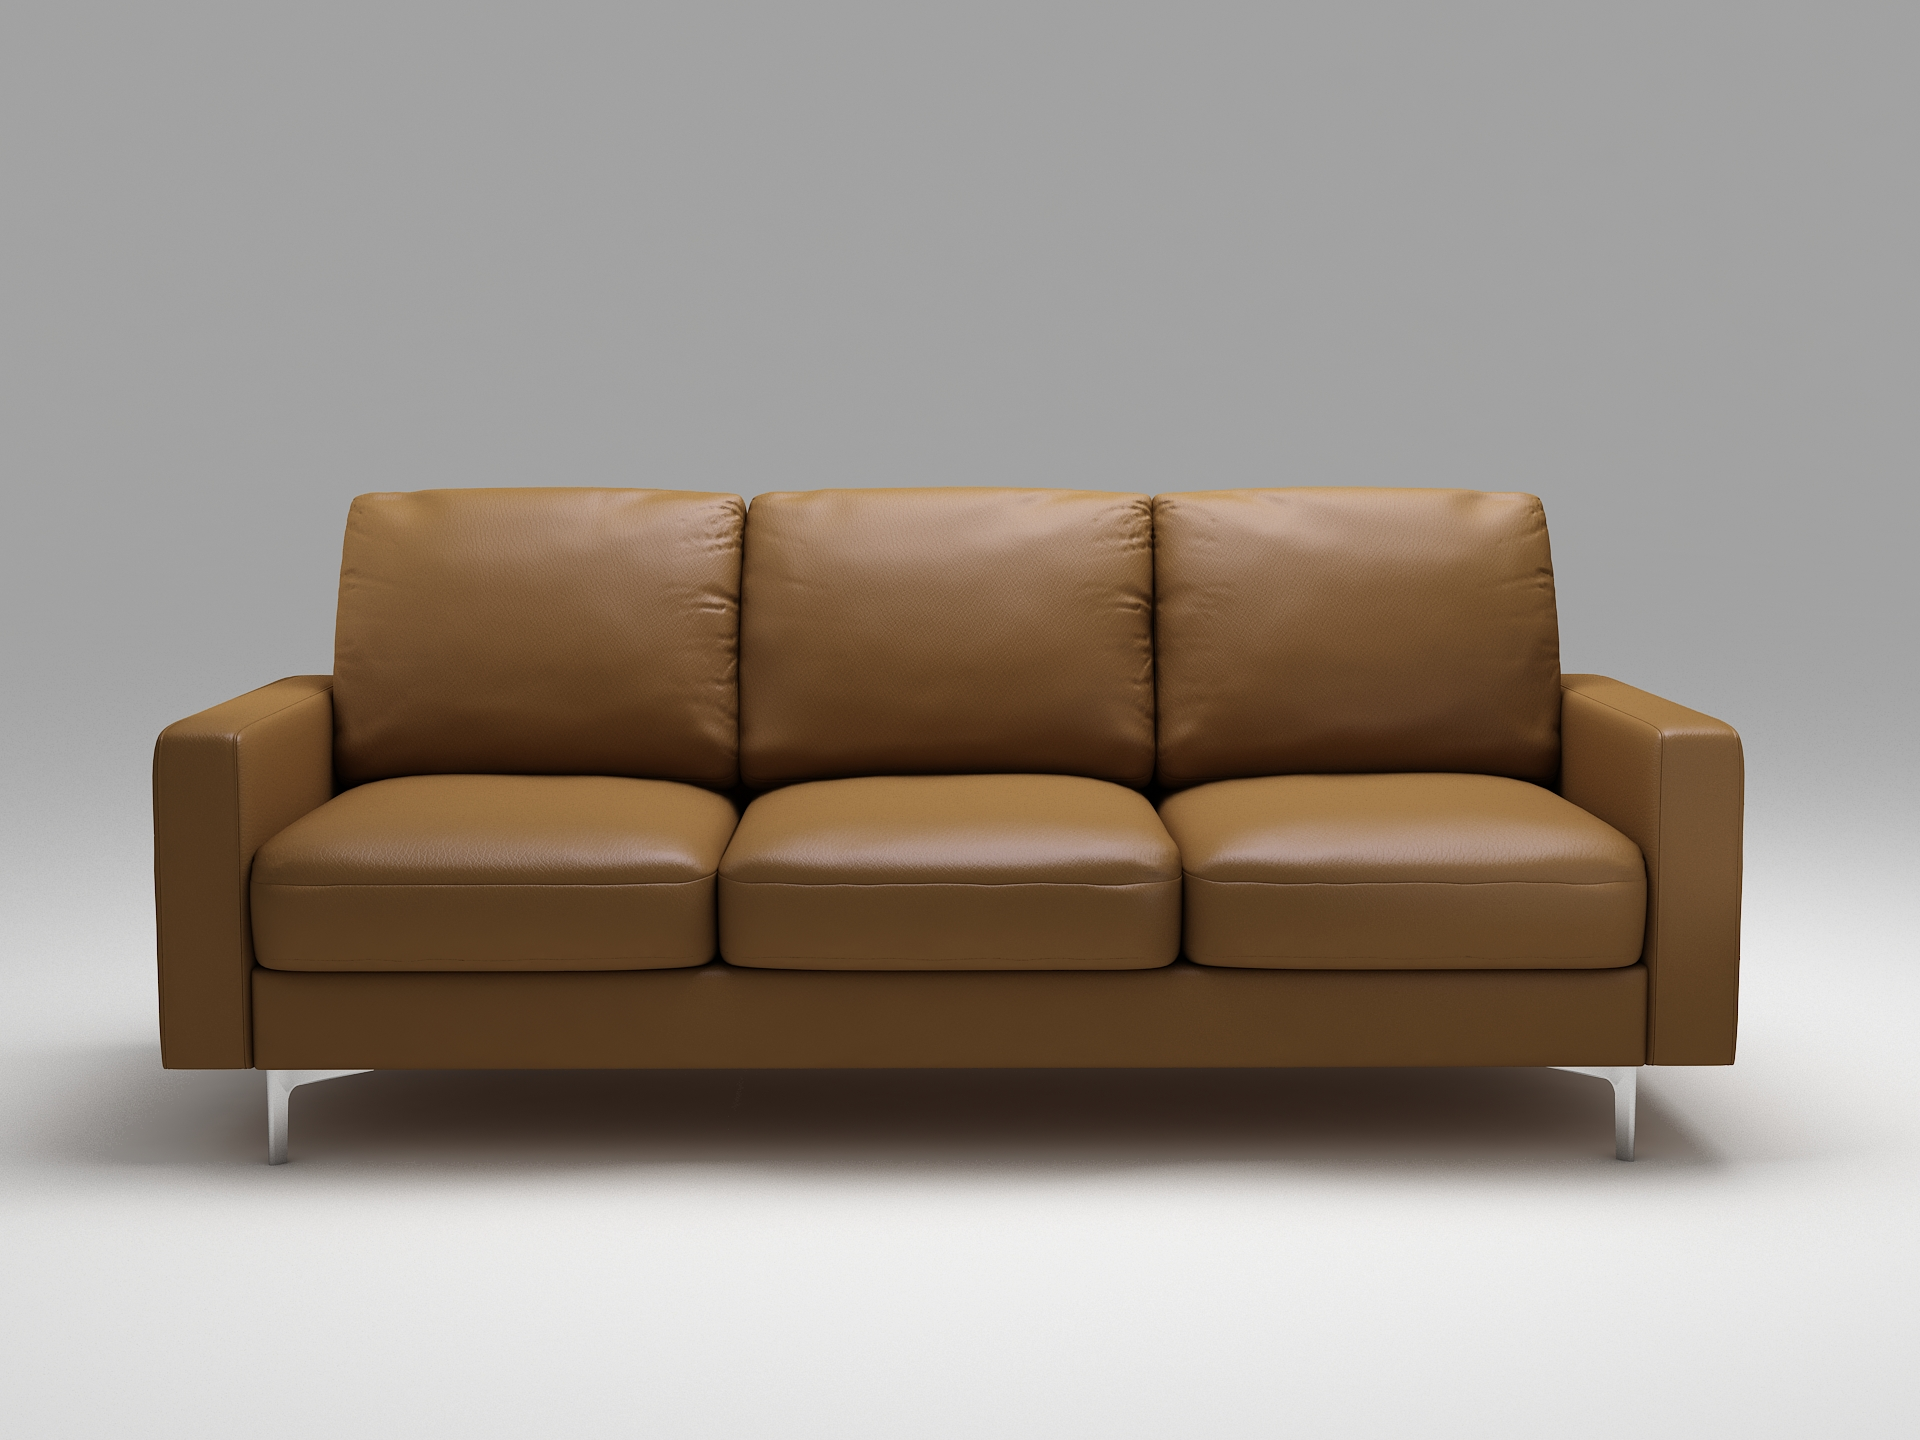 queenshome brown curved burnt orange chocolate big comfy leather reclining sectional couch with recliners sofa cover set queens home